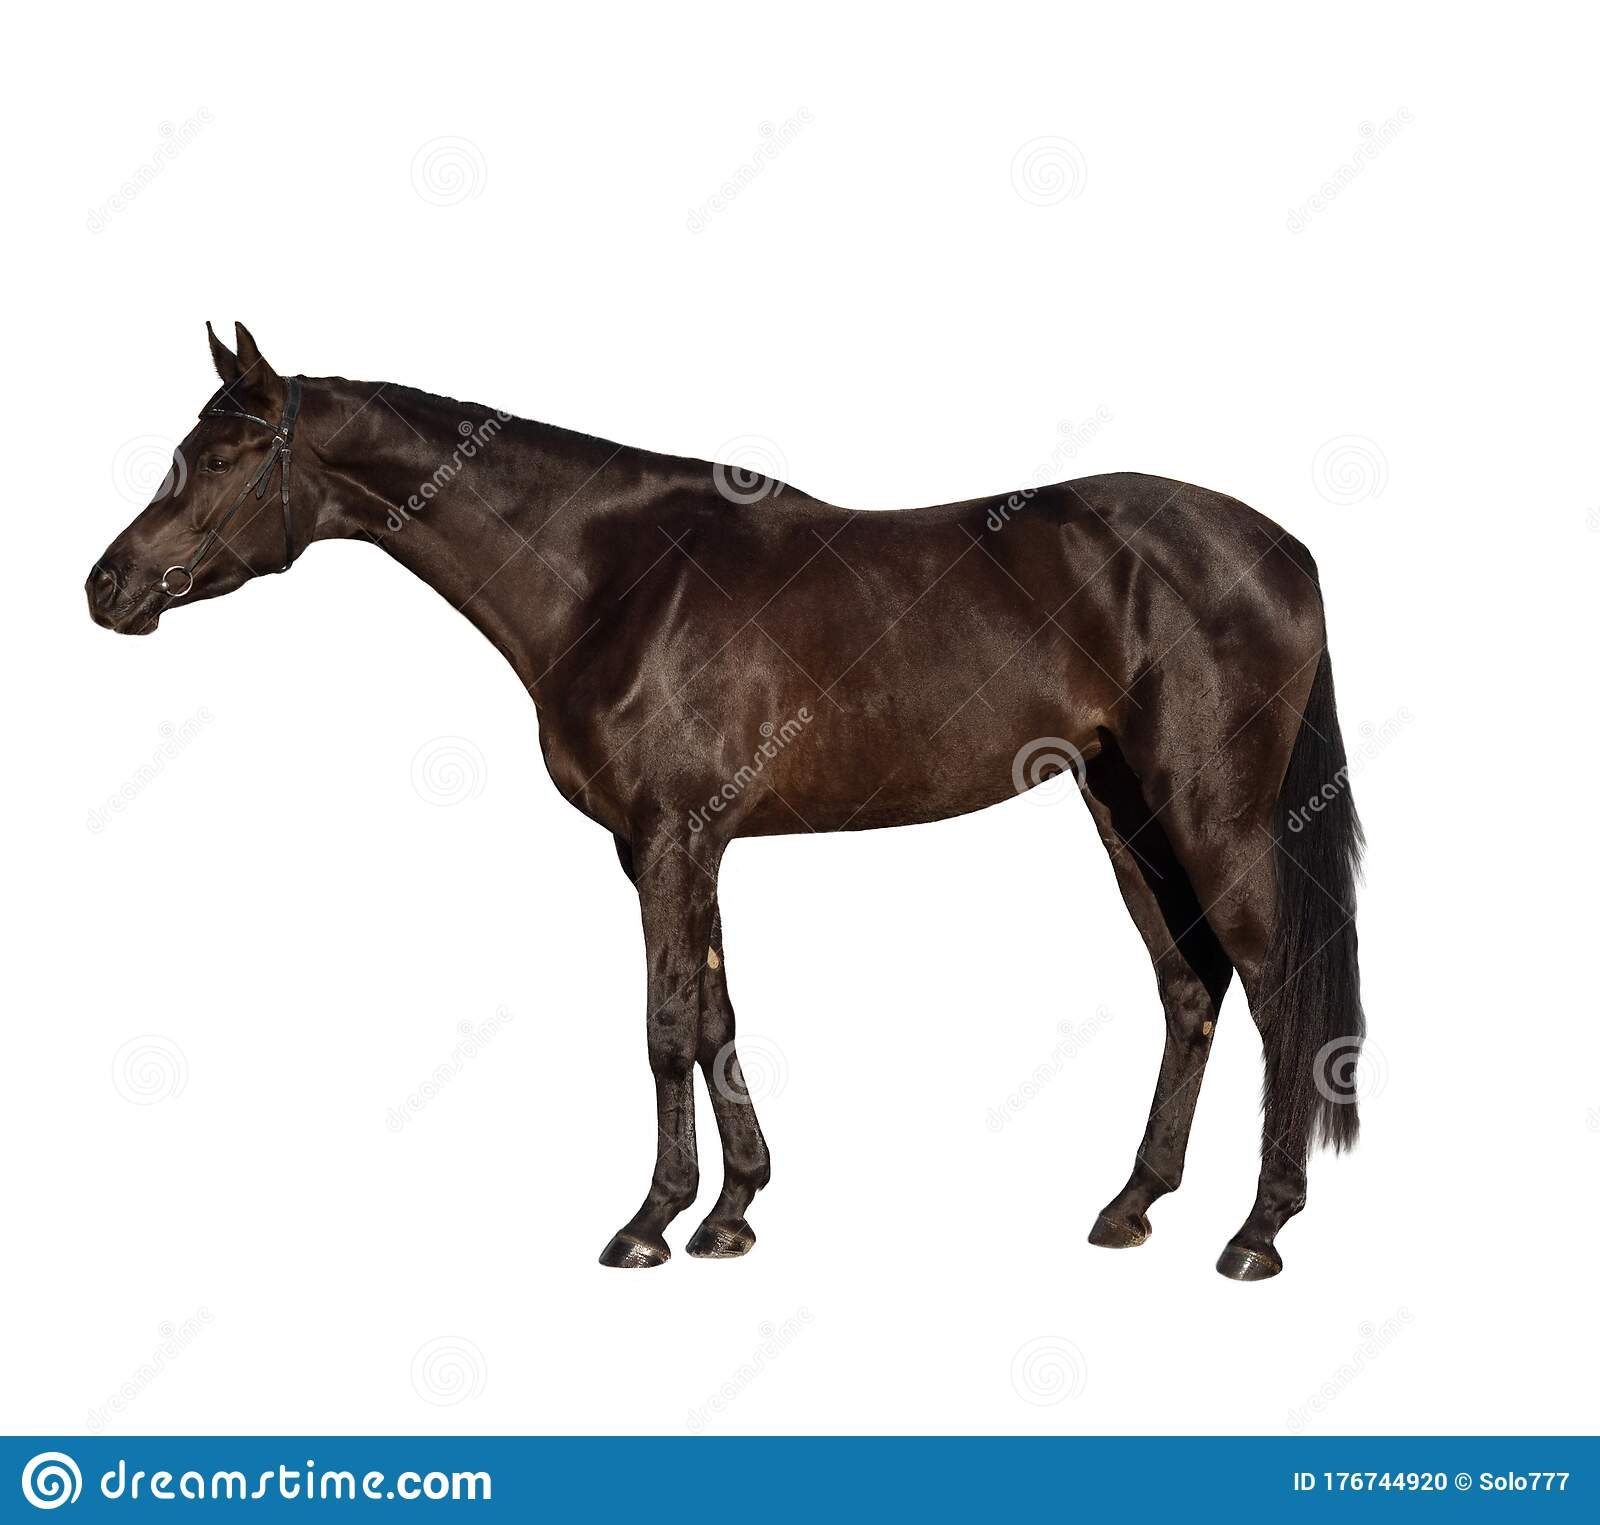 319 Dark Bay Horse Isolated White Background Photos Free Royalty Free Stock Photos From Dreamstime